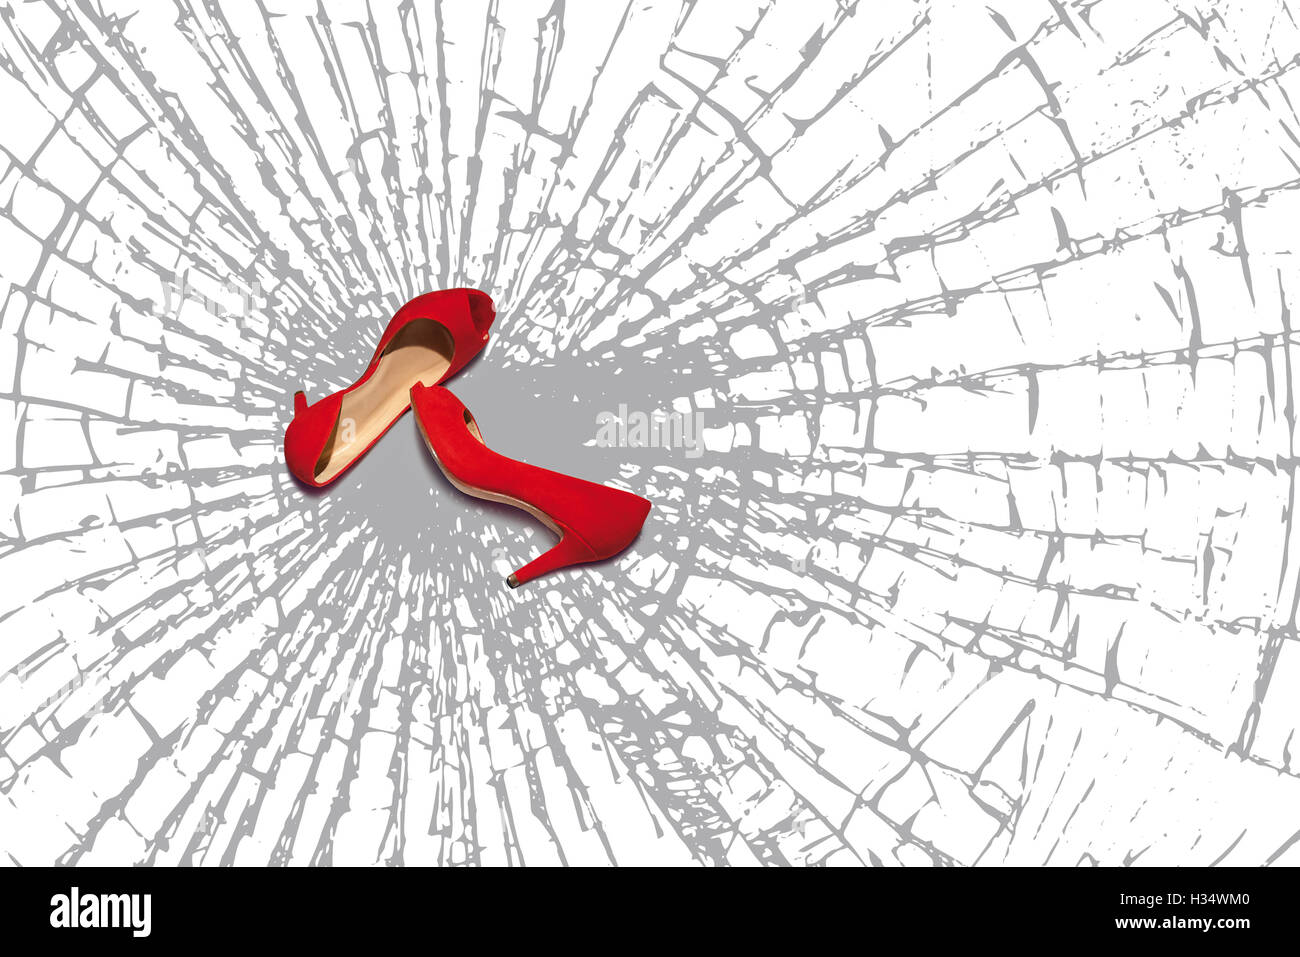 The design features two red women's shoes, are based on a full floor of broken glass fragments. - Stock Image